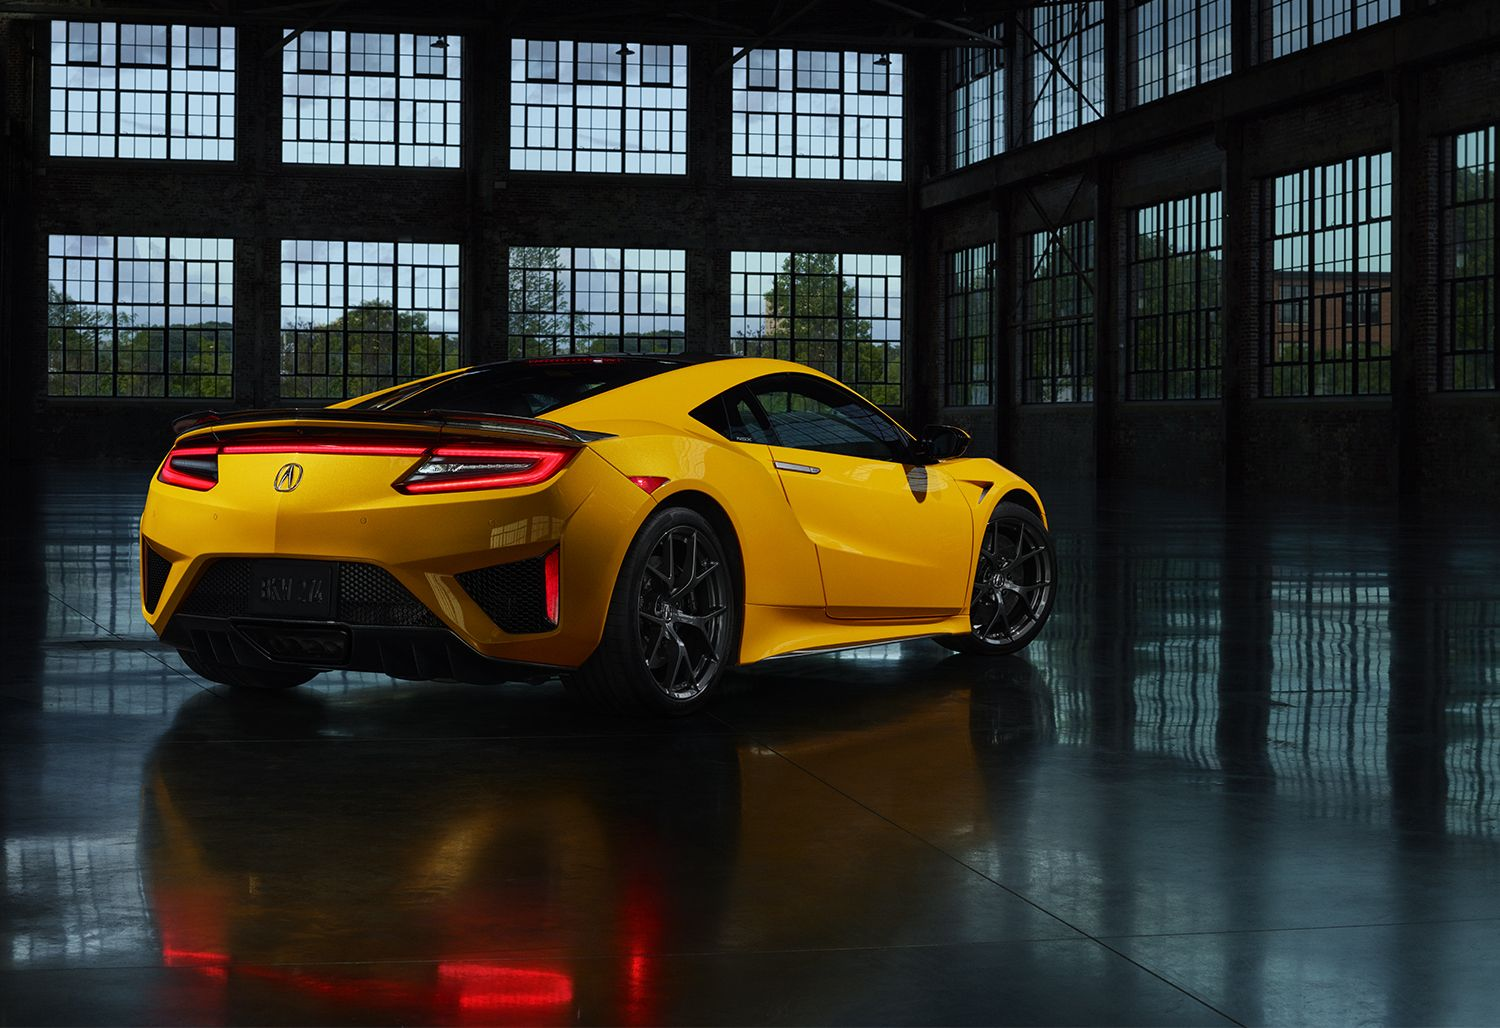 Indy Yellow Pearl Nsx In 2020 Nsx Acura Nsx Supercar Design